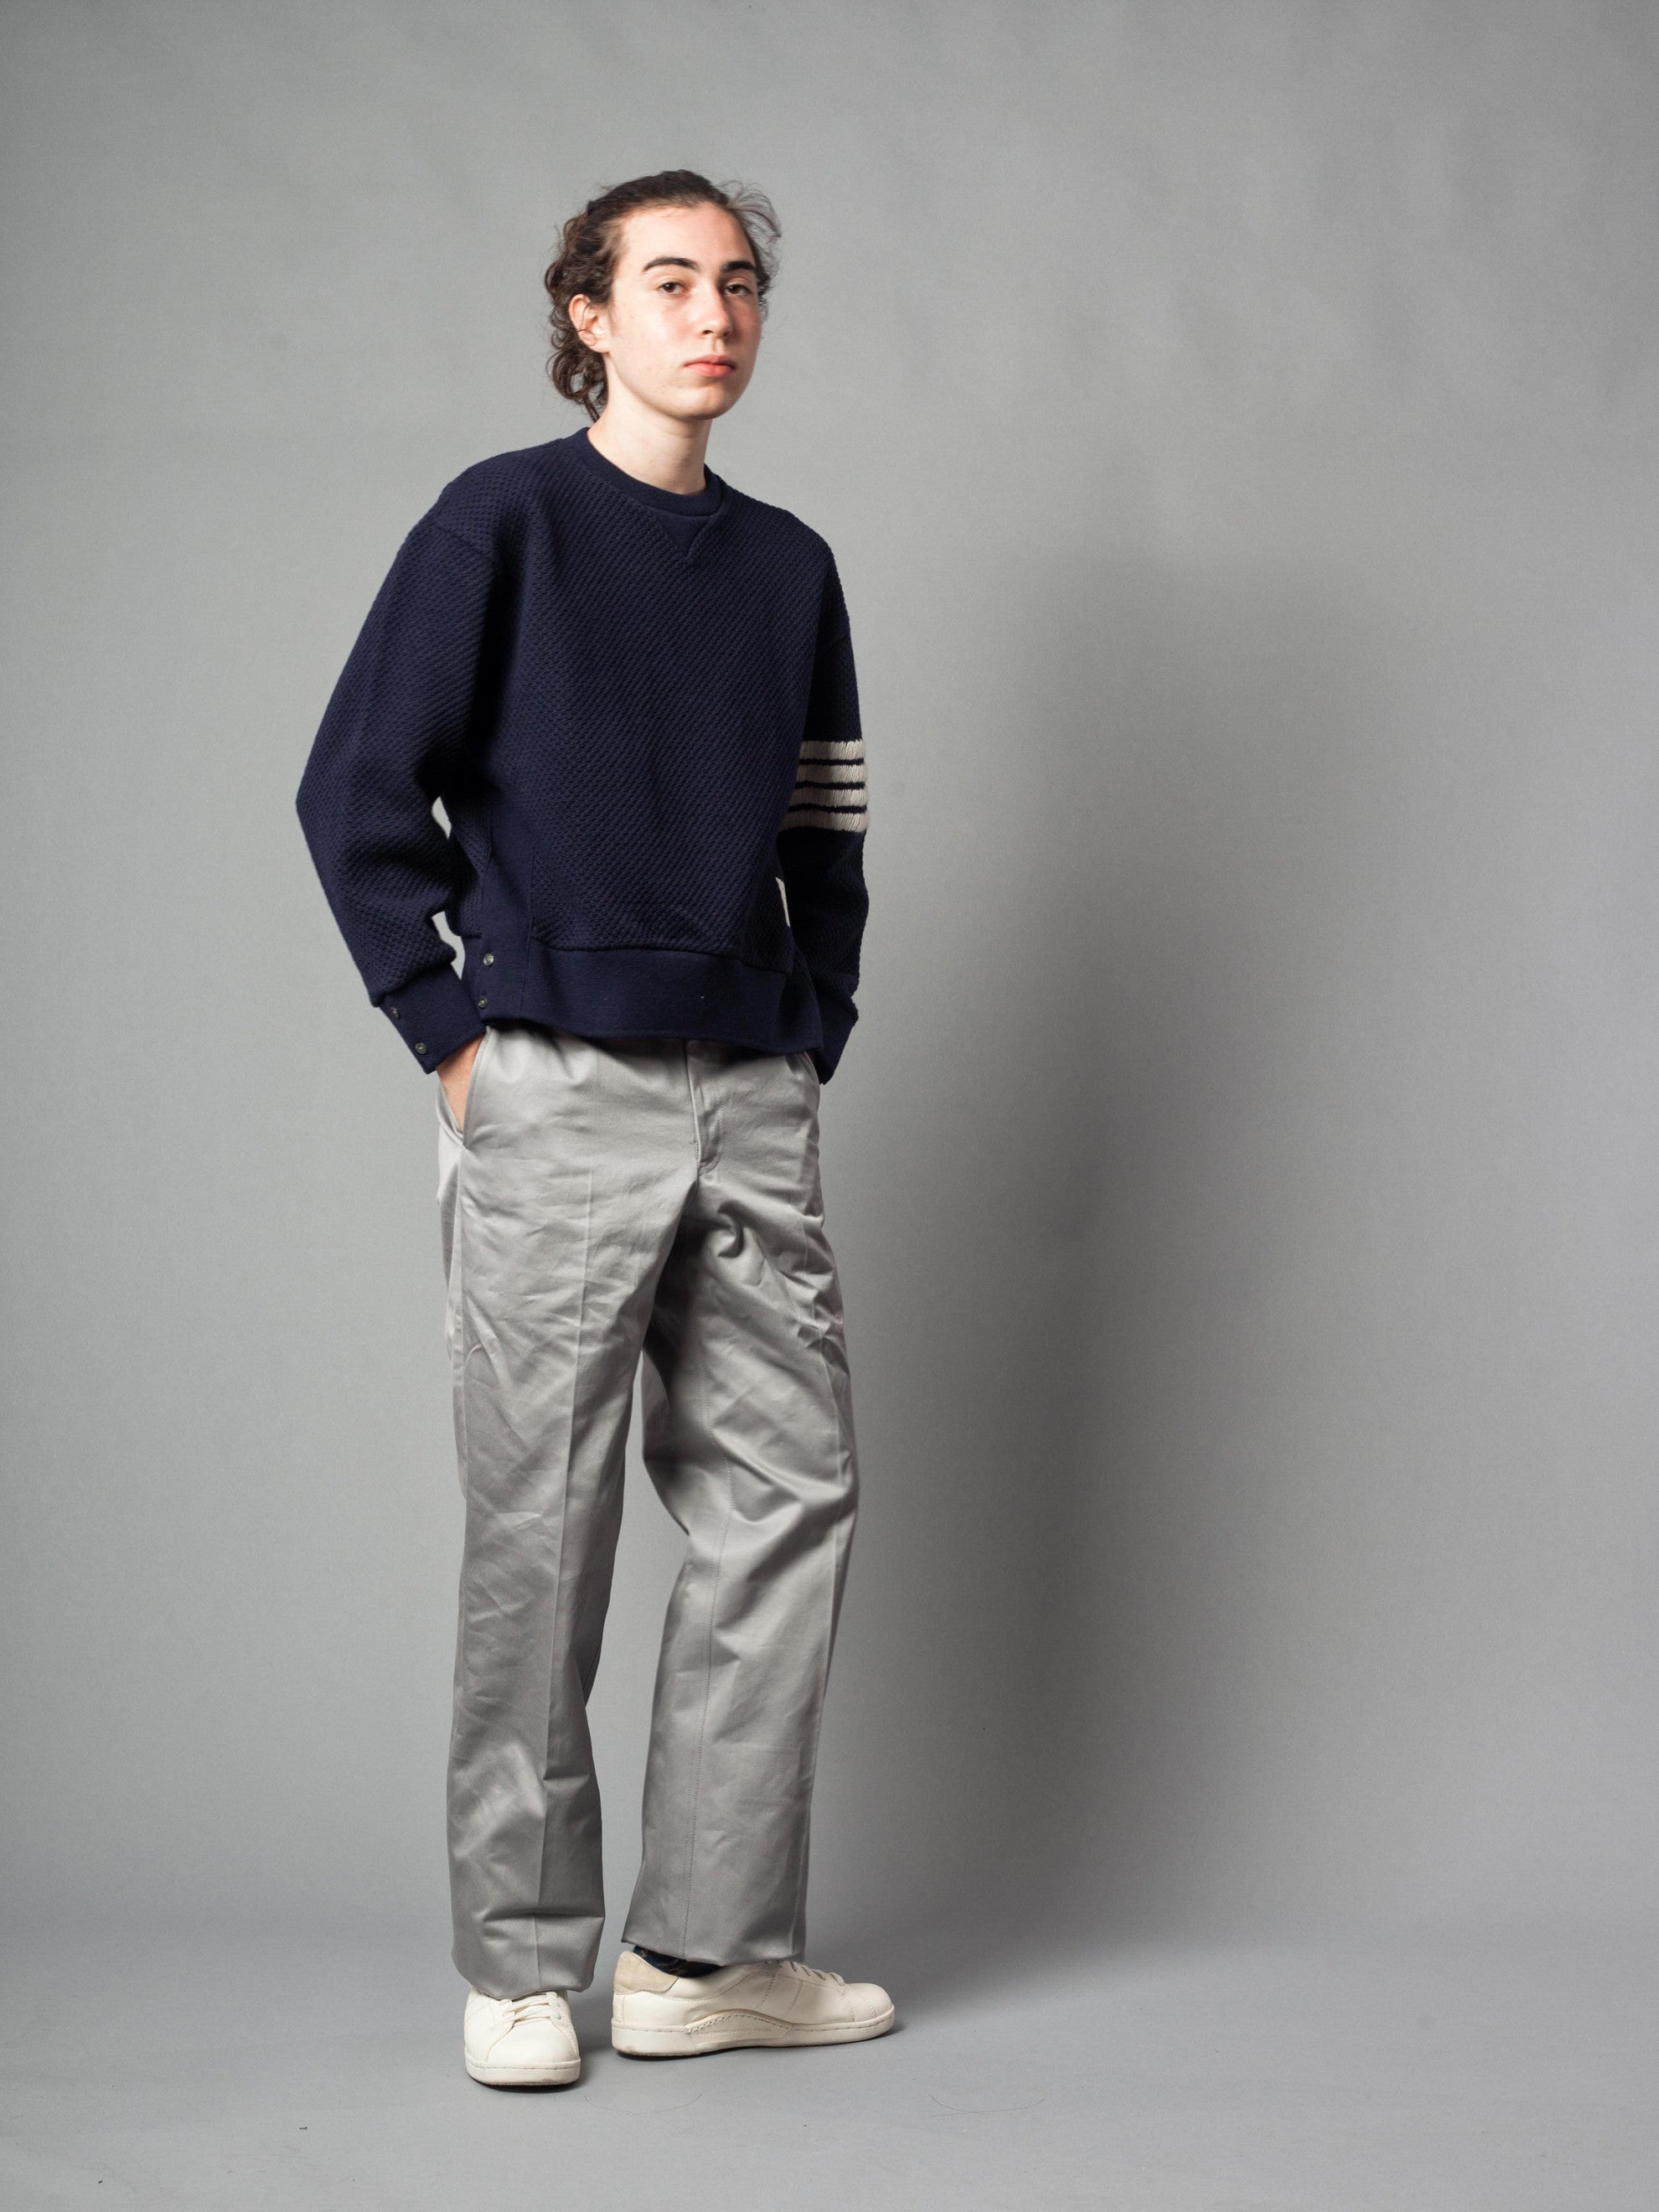 Unconstructed Straight Leg Chino (Light Weight High Density Cotton Twill)